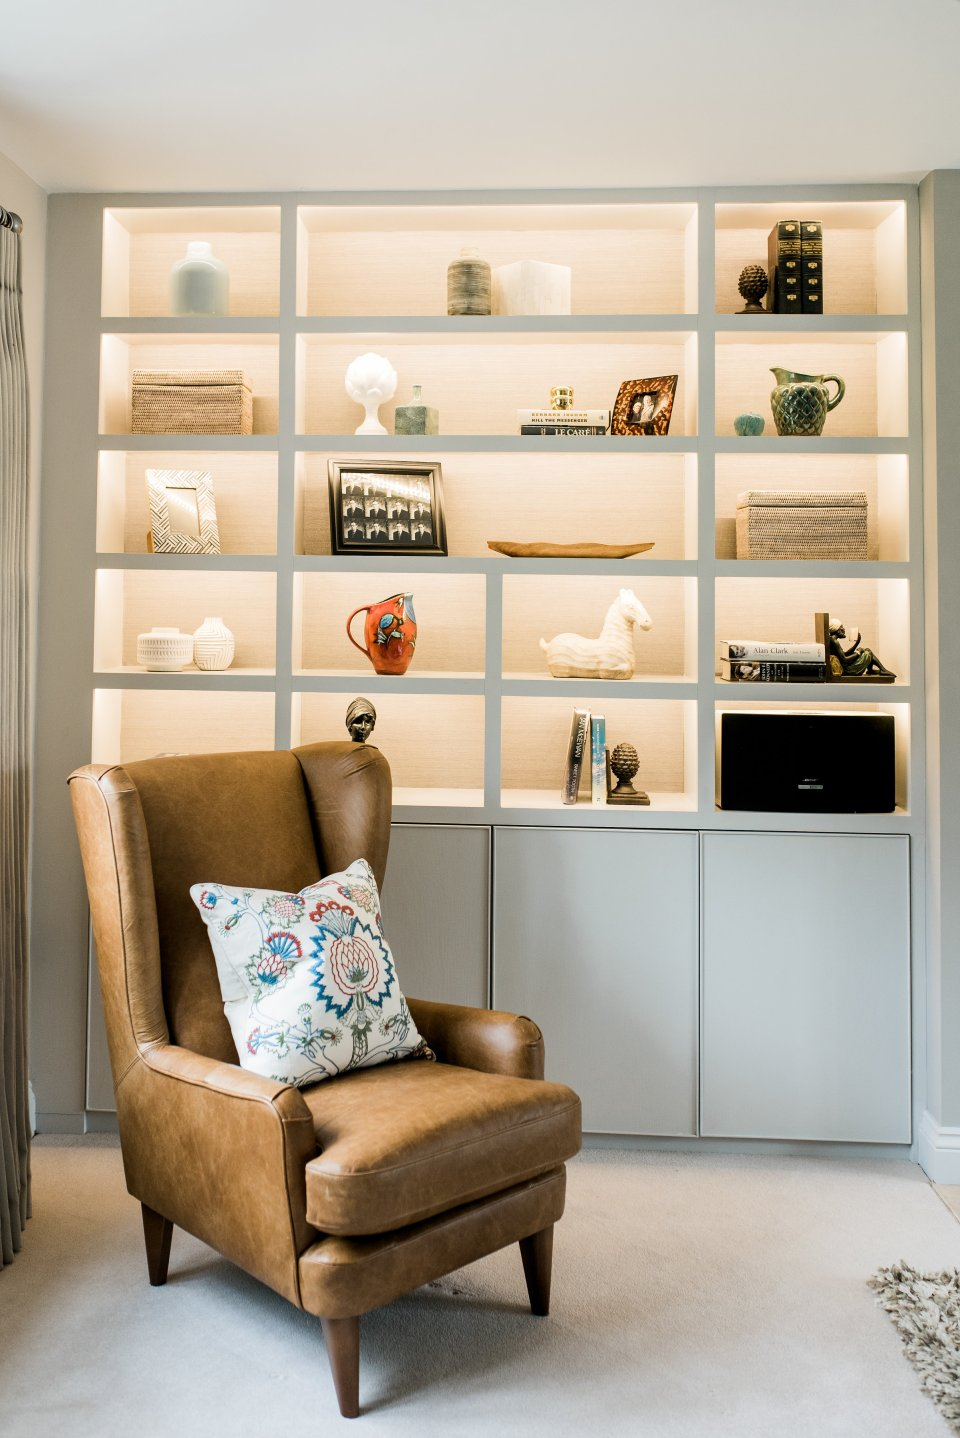 Shelving styling in modern Cotswolds home spring cleaning